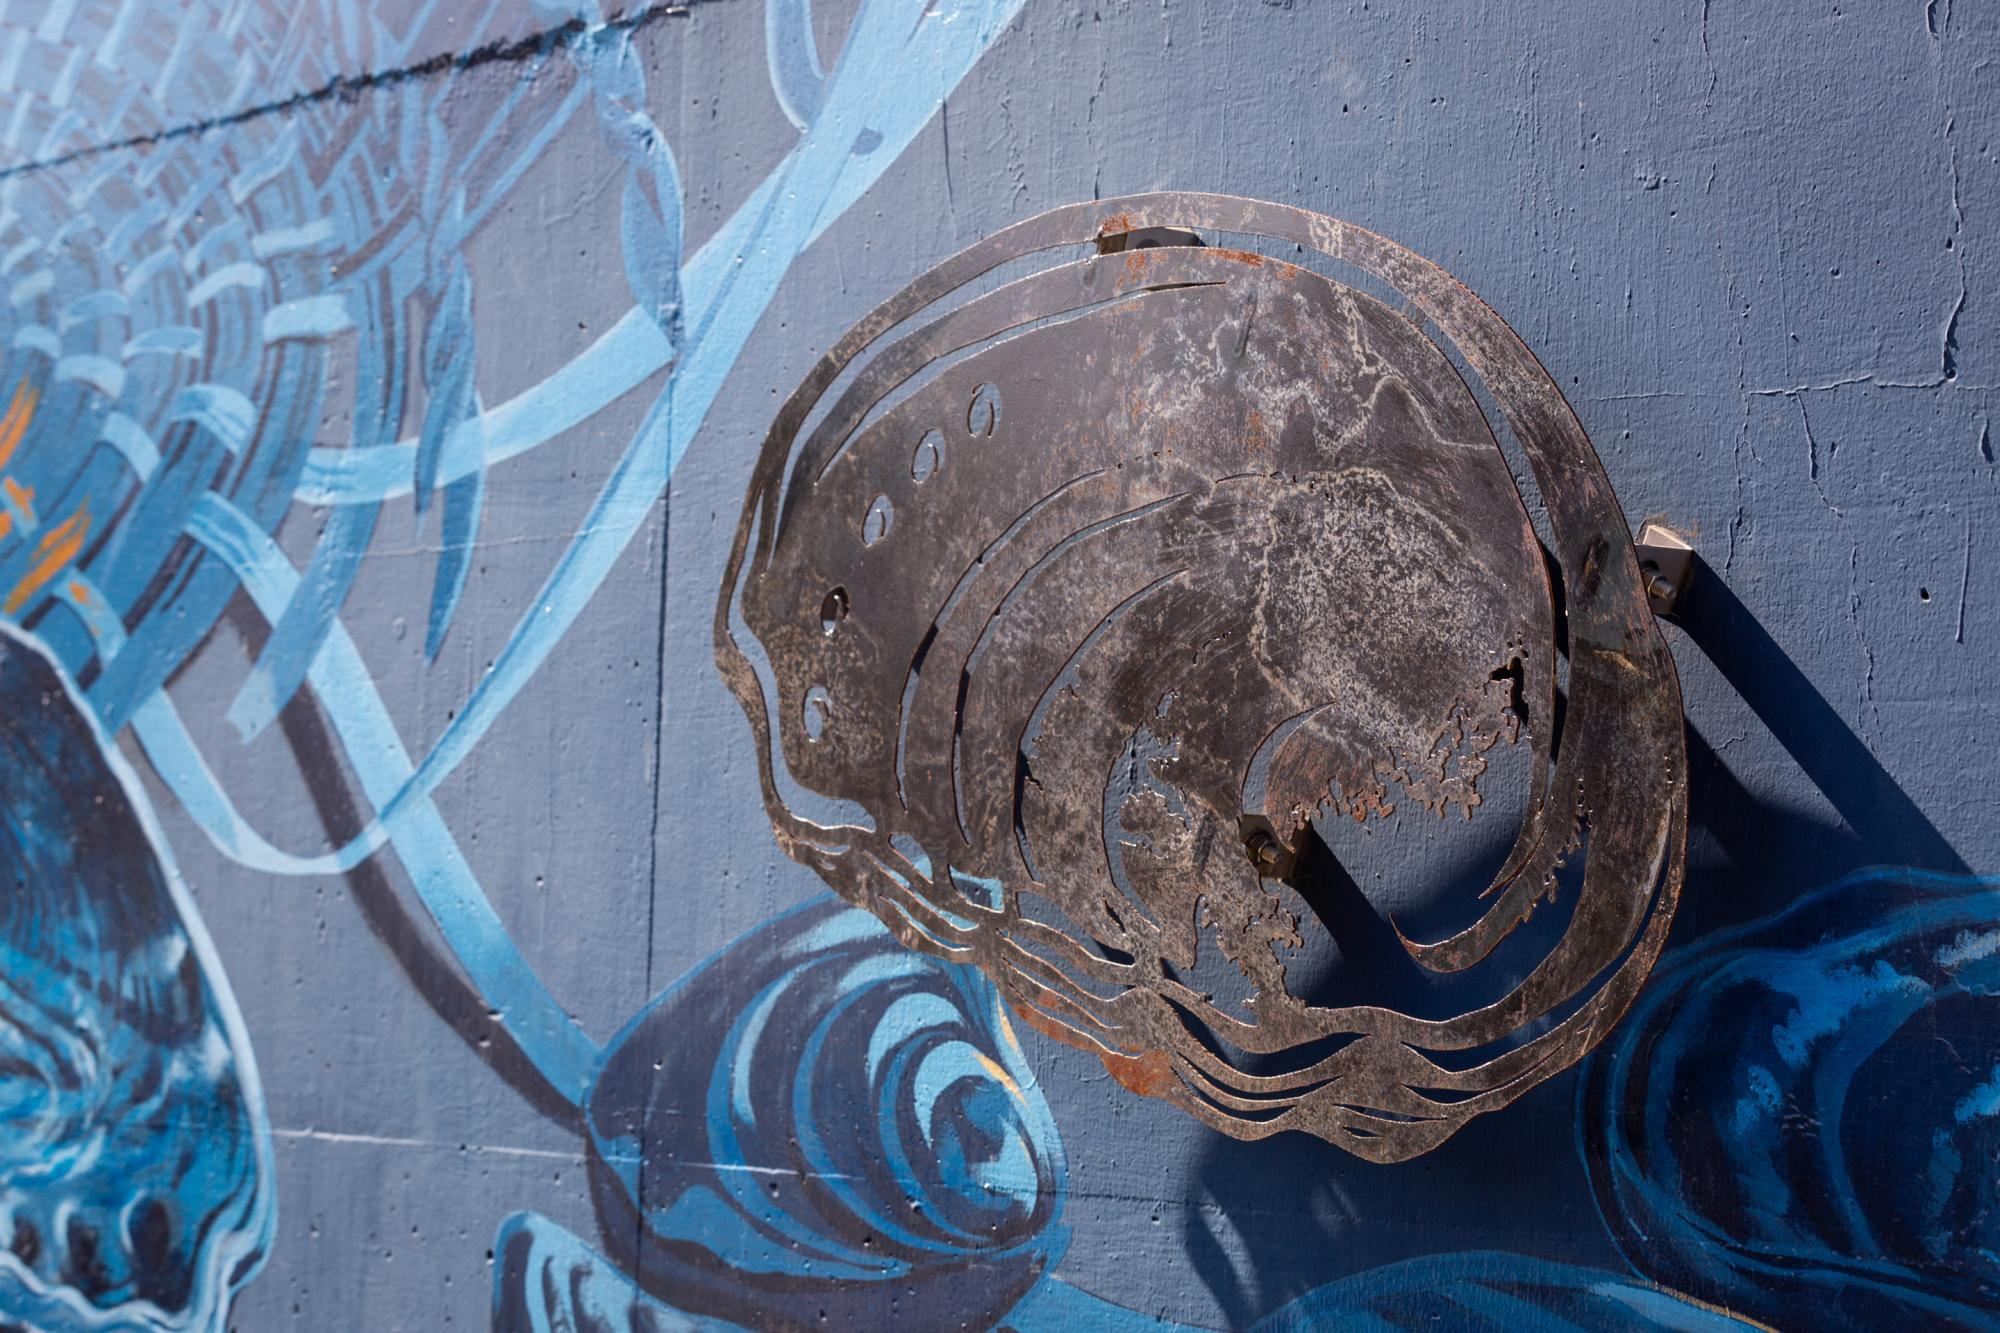 Metal cutout of an abolone shell installed against blue mural backdrop.